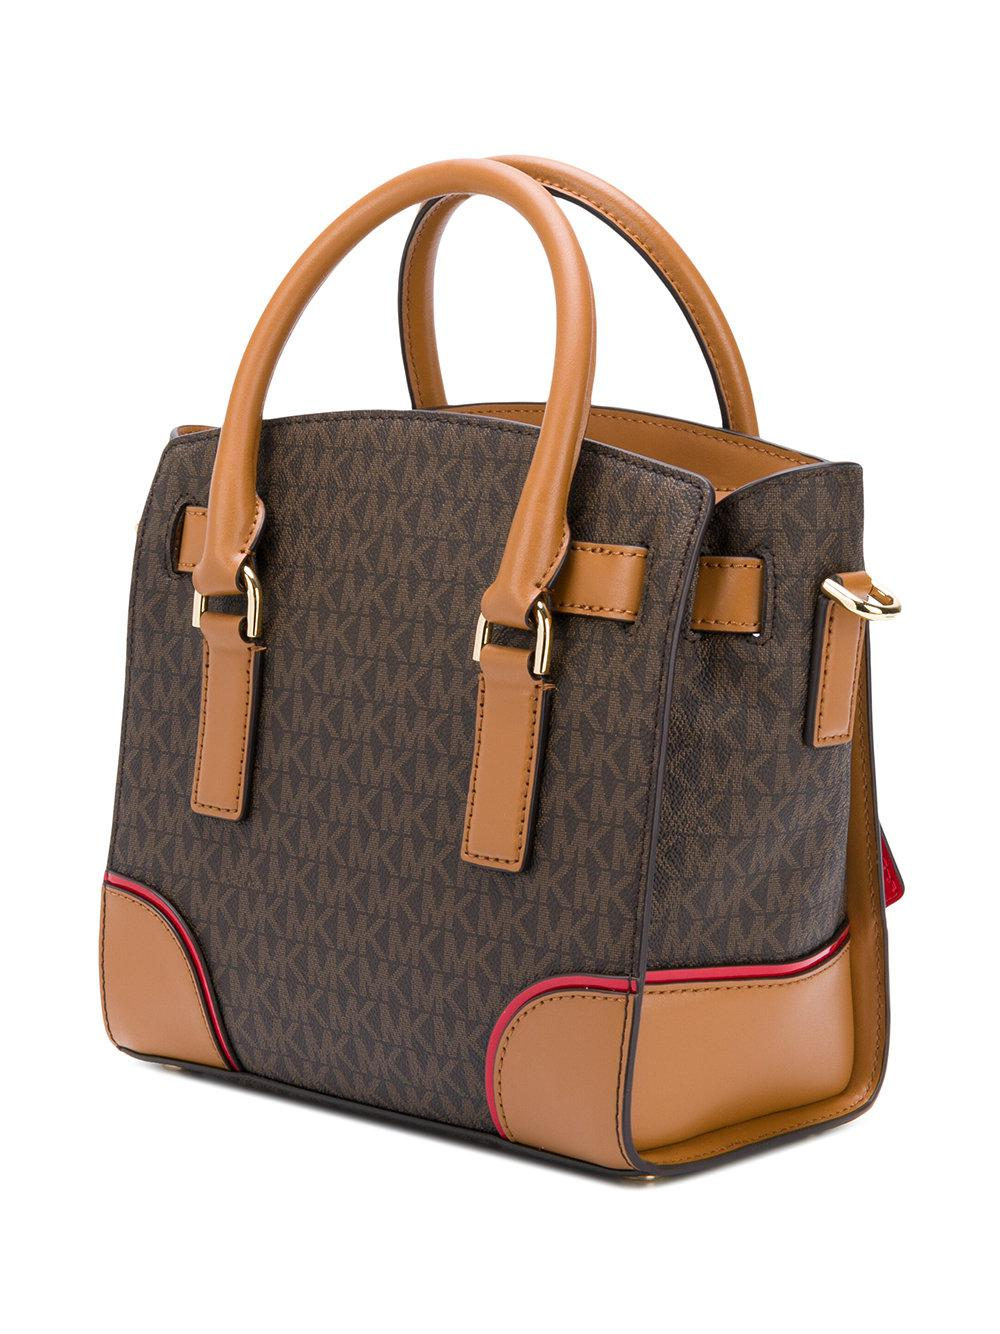 MICHAEL Michael Kors Hamilton Large Logo Tote in Brown